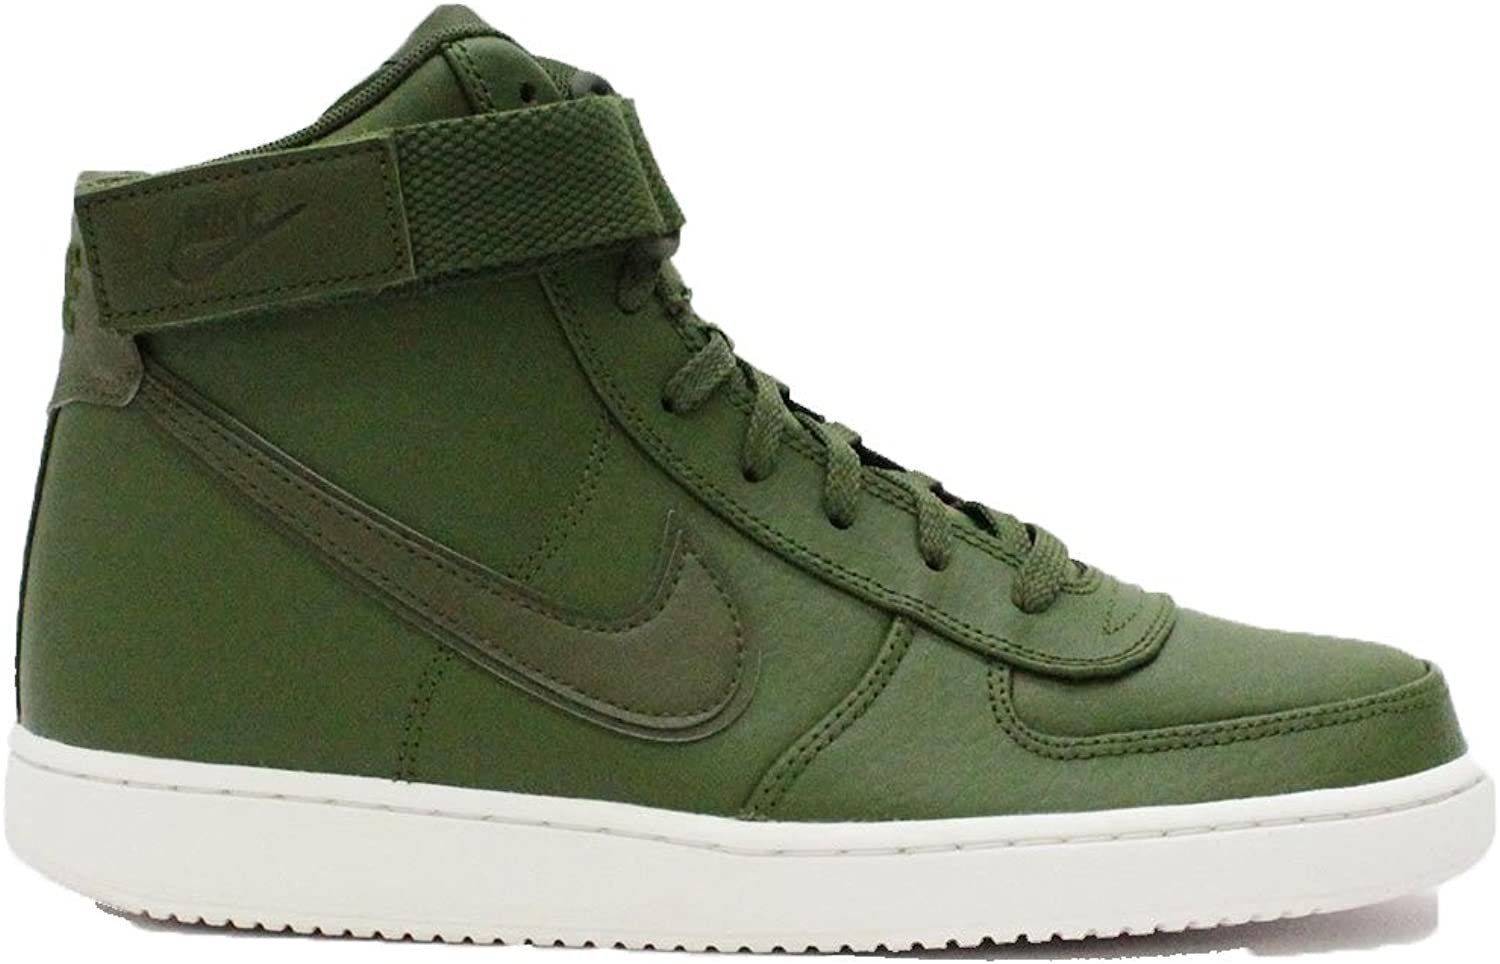 Nike Men's Vandal High Supreme Leather Basketball shoes